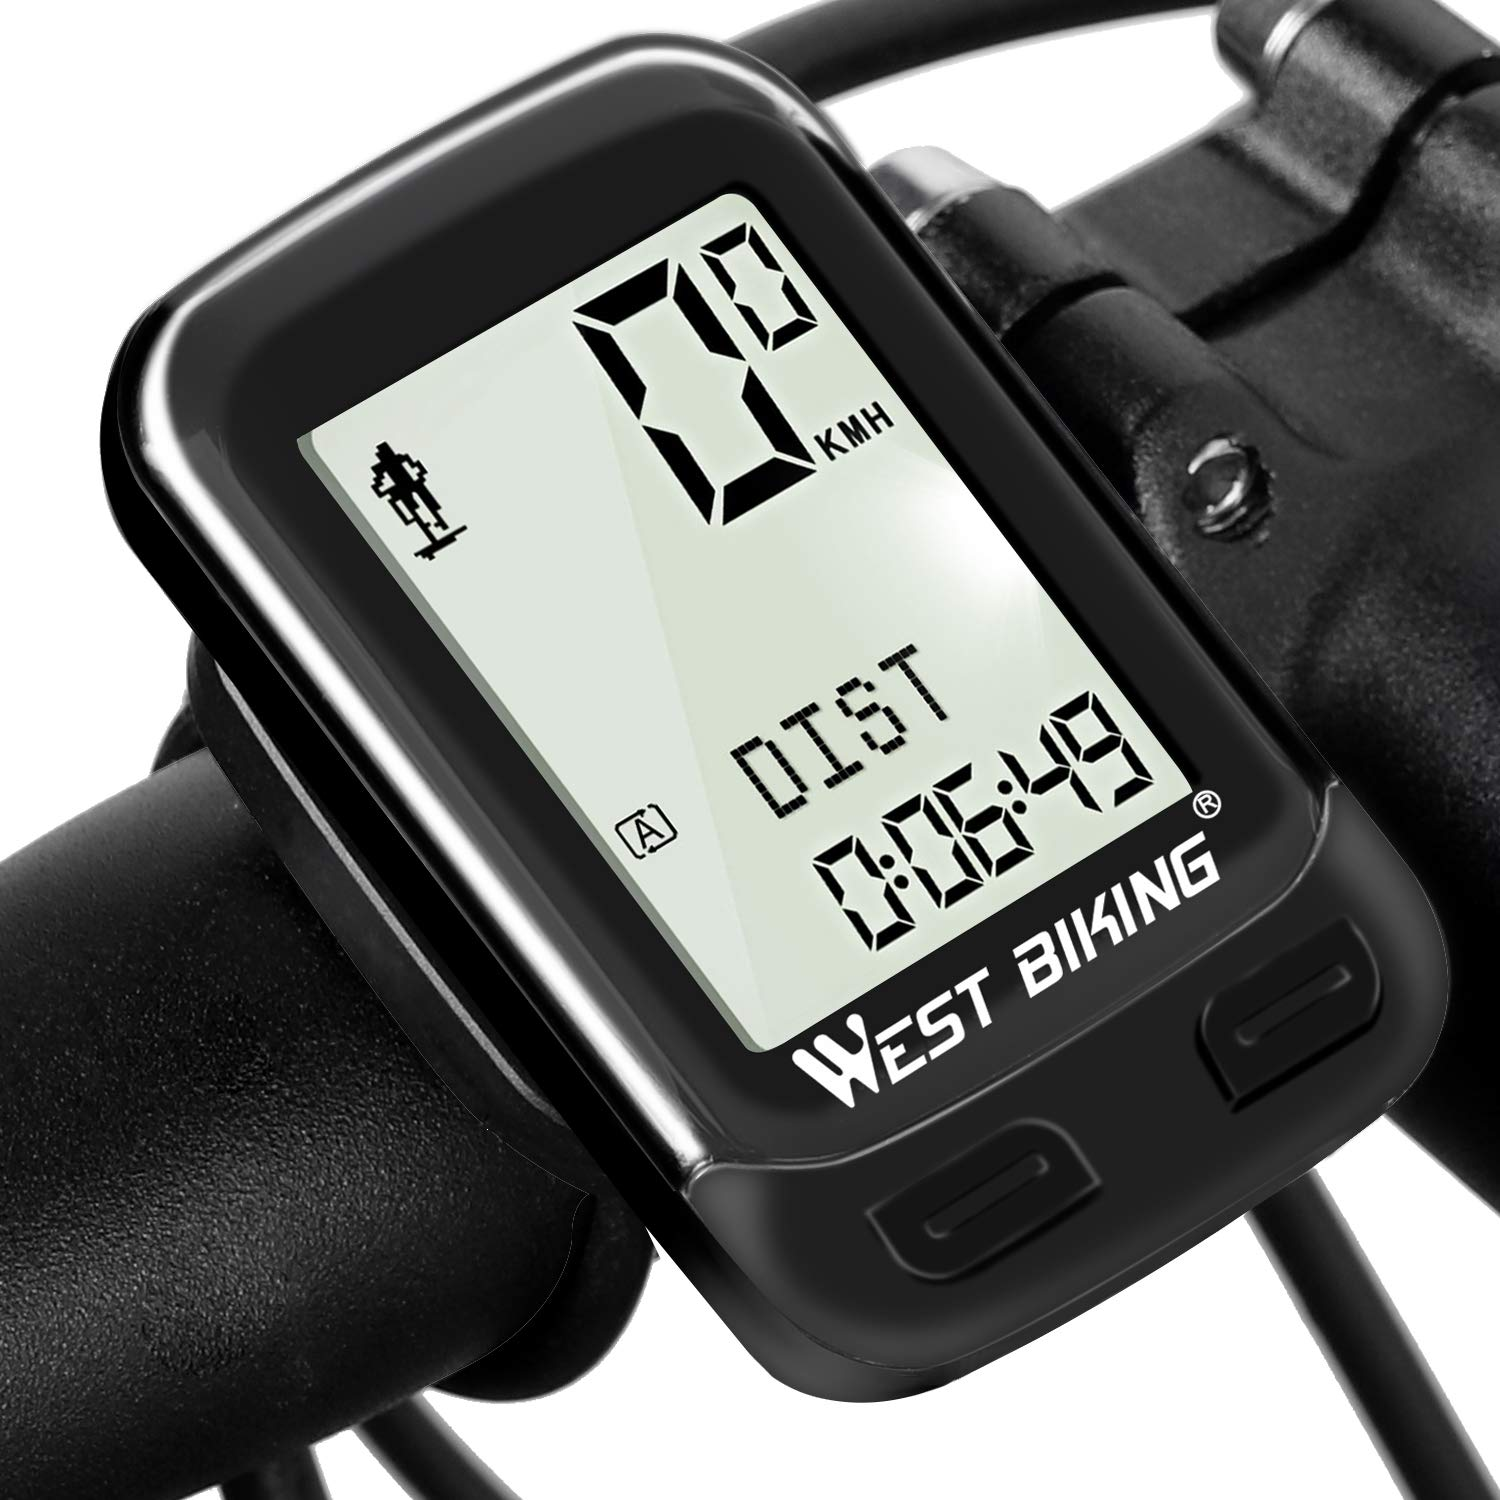 Bike Computer Wireless Waterproof Bicycle Odometer Speedometer Automatic Wake-up 22 Function Cycling Computer User A/B LCD Backlight 5 Language Displays Cycling Accessories Outdoor Exercise Tool by ICOCOPRO